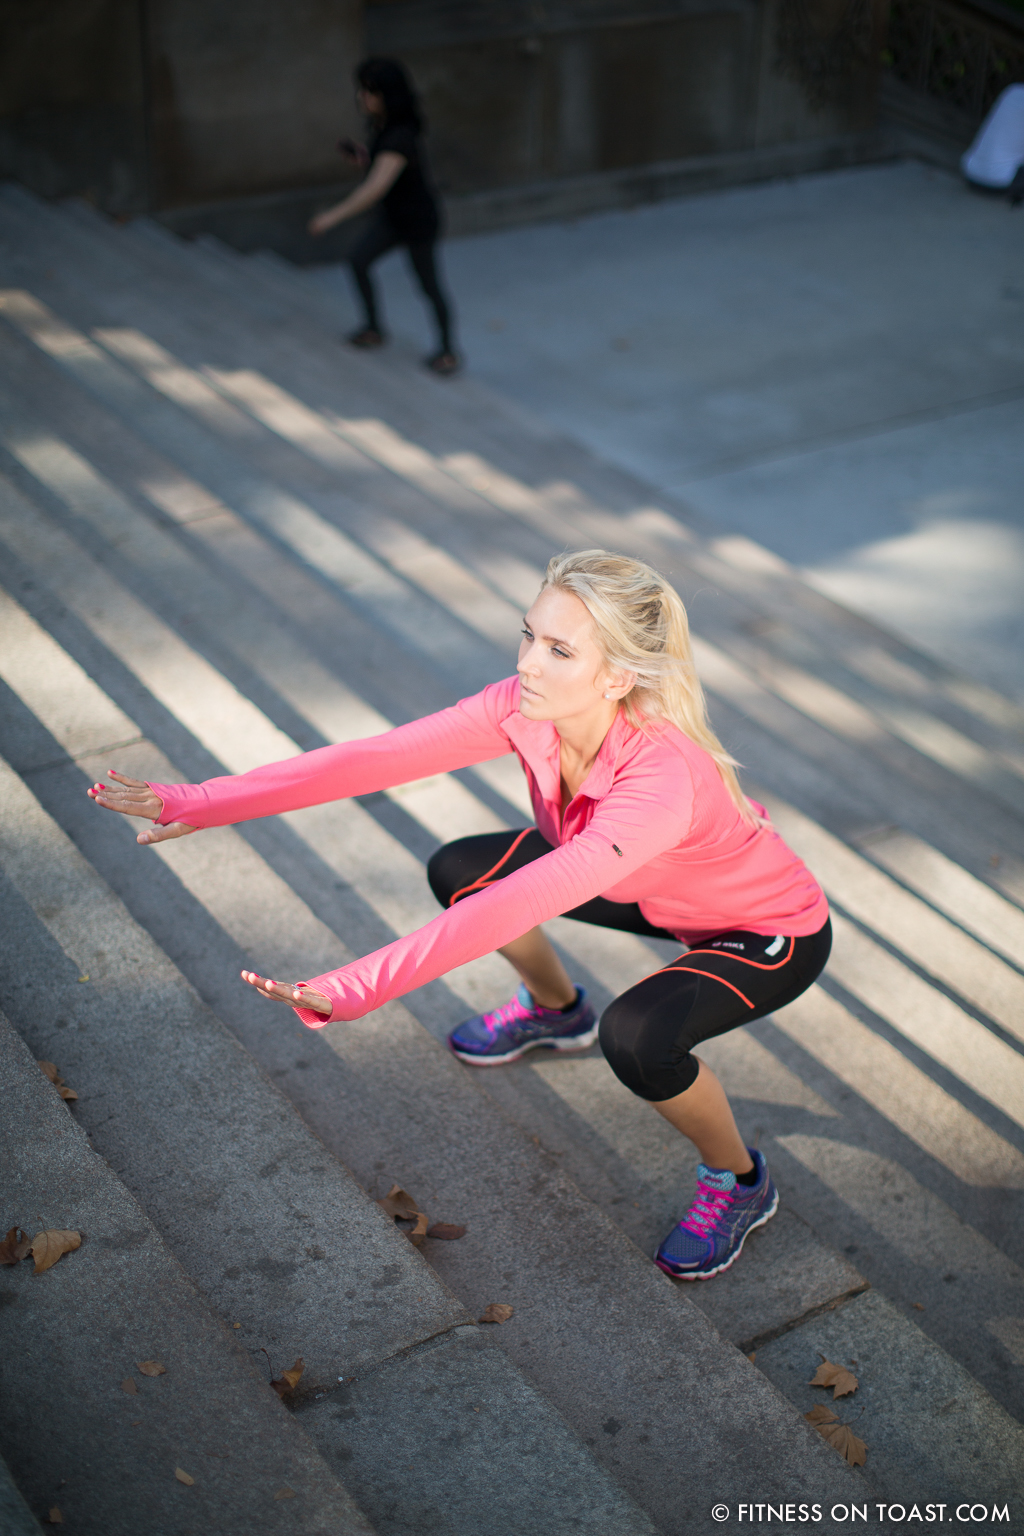 Asics New York Central Park Fitness On Toast Faya Blog Running Training Stretching Women Routine-7